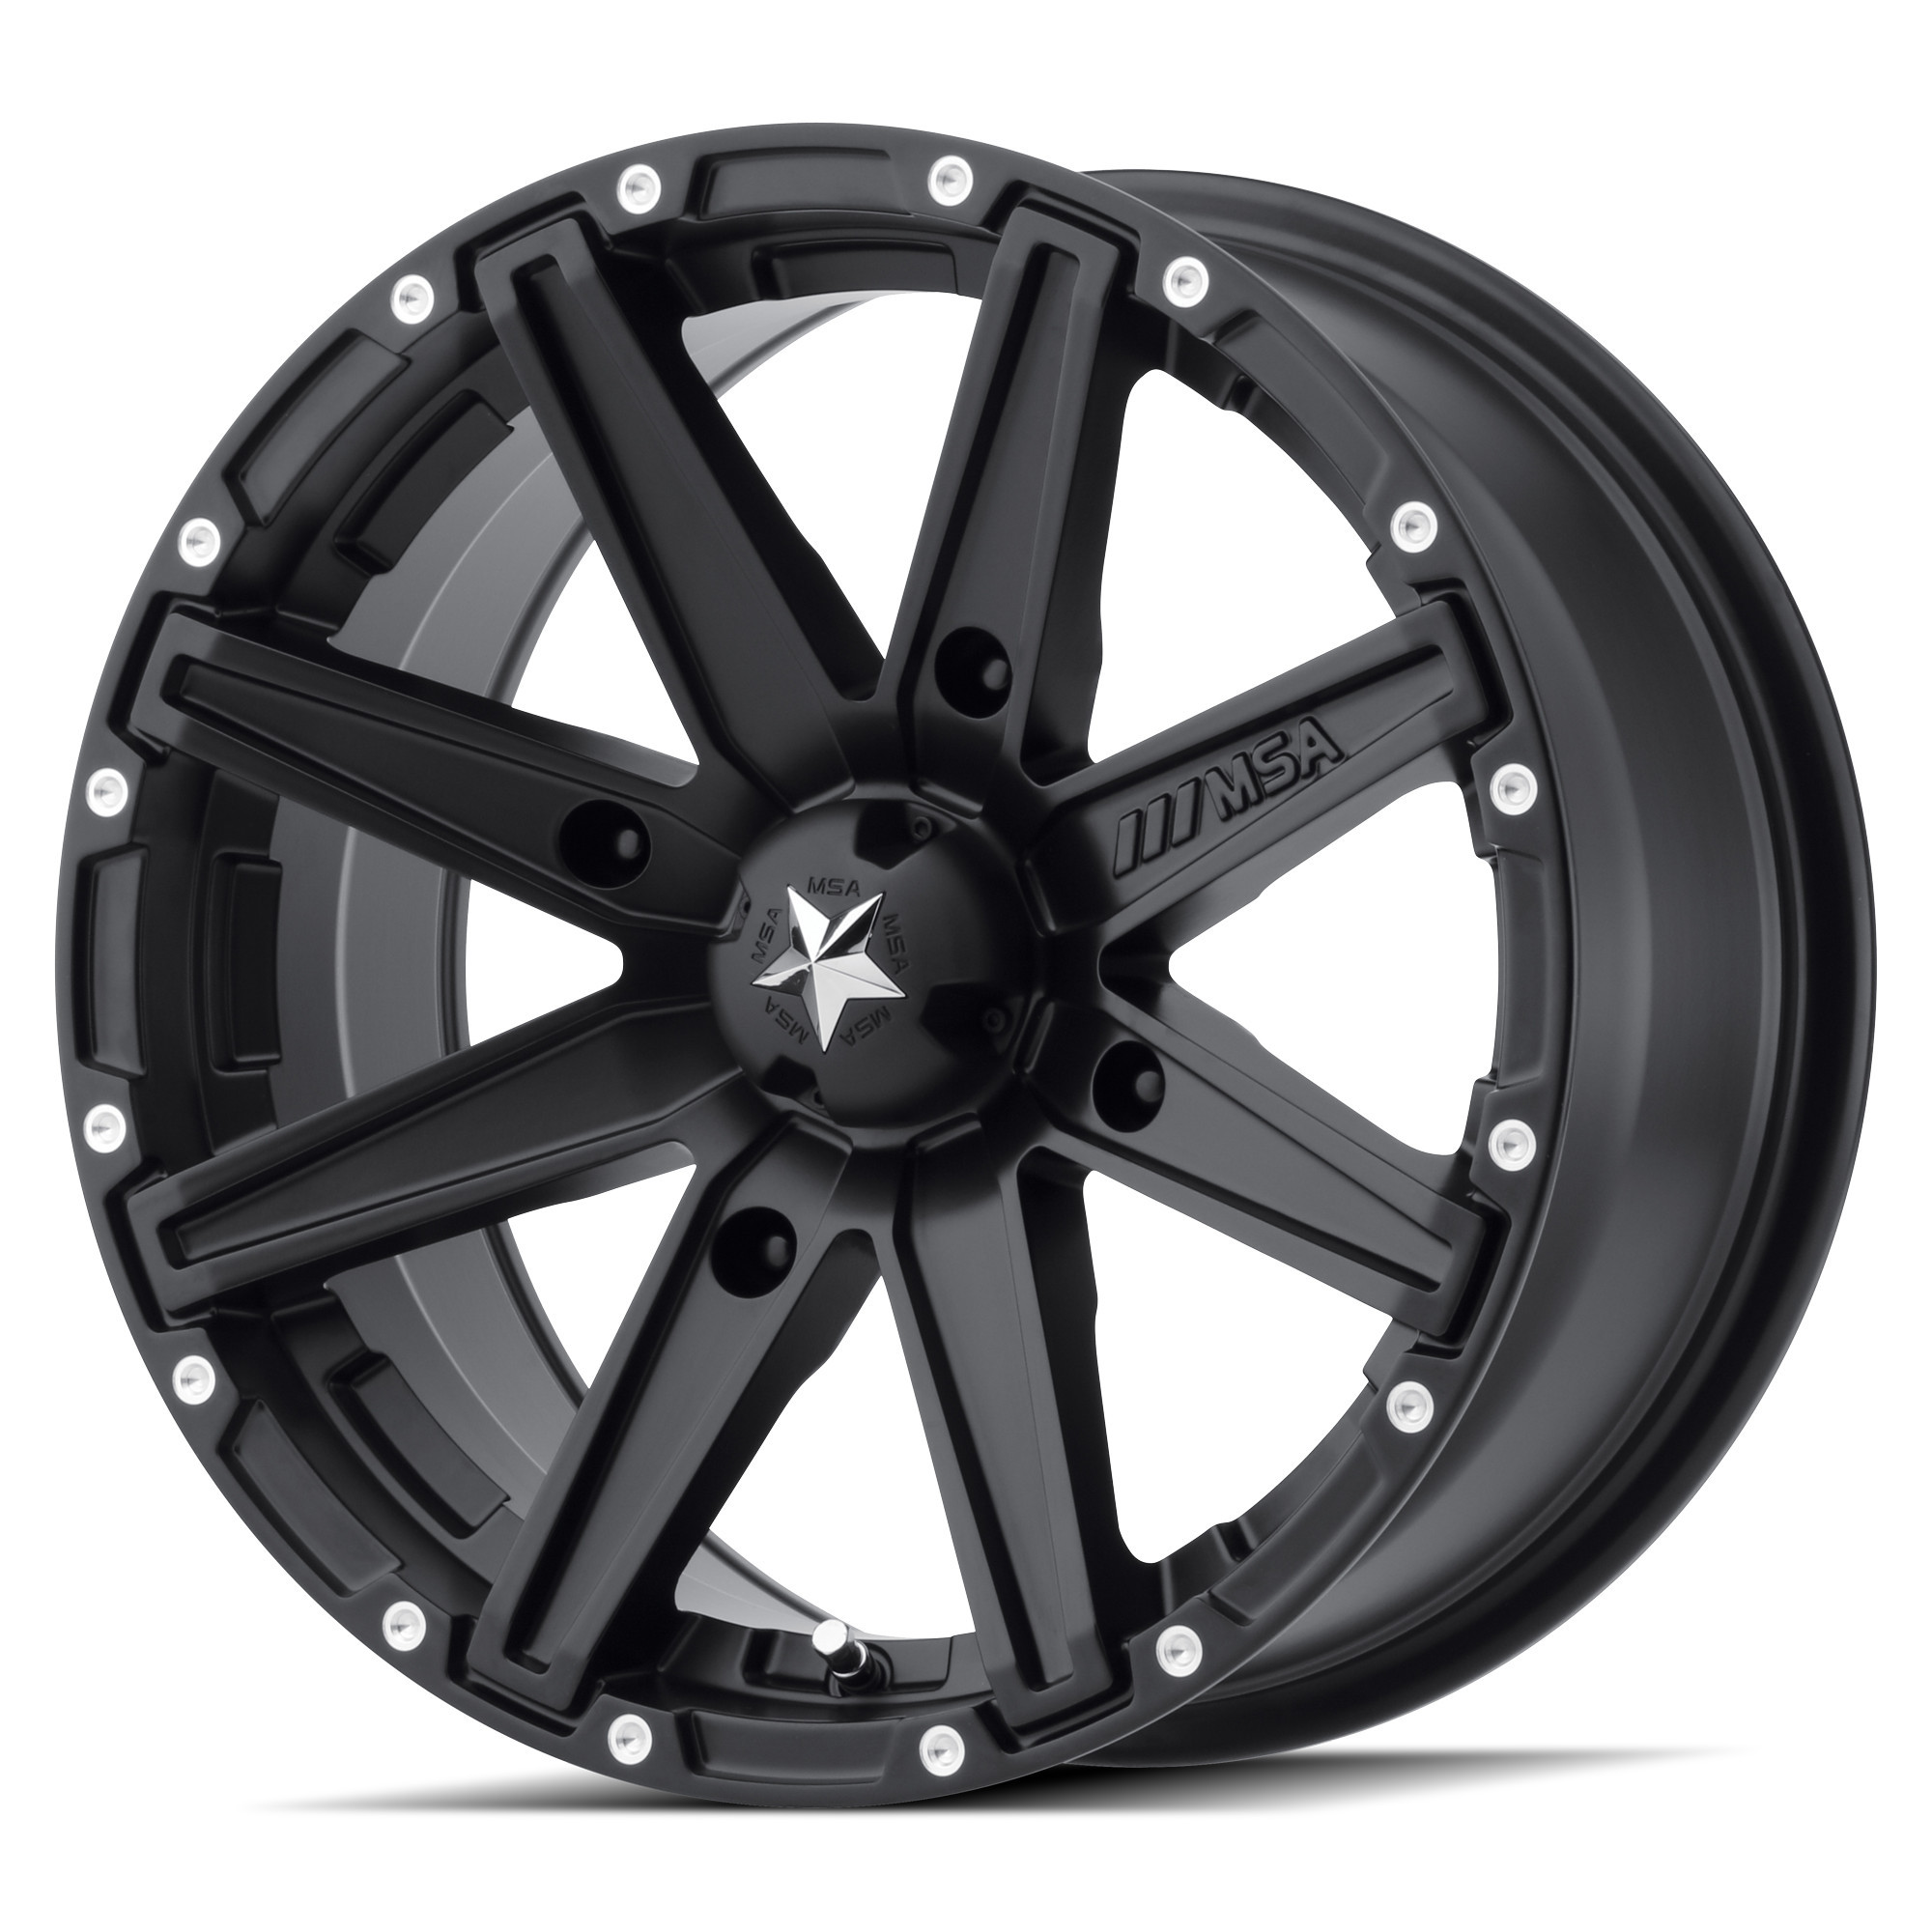 MSA 12x7 4x137 M33 Clutch Satin Black vannesarja Can-Am